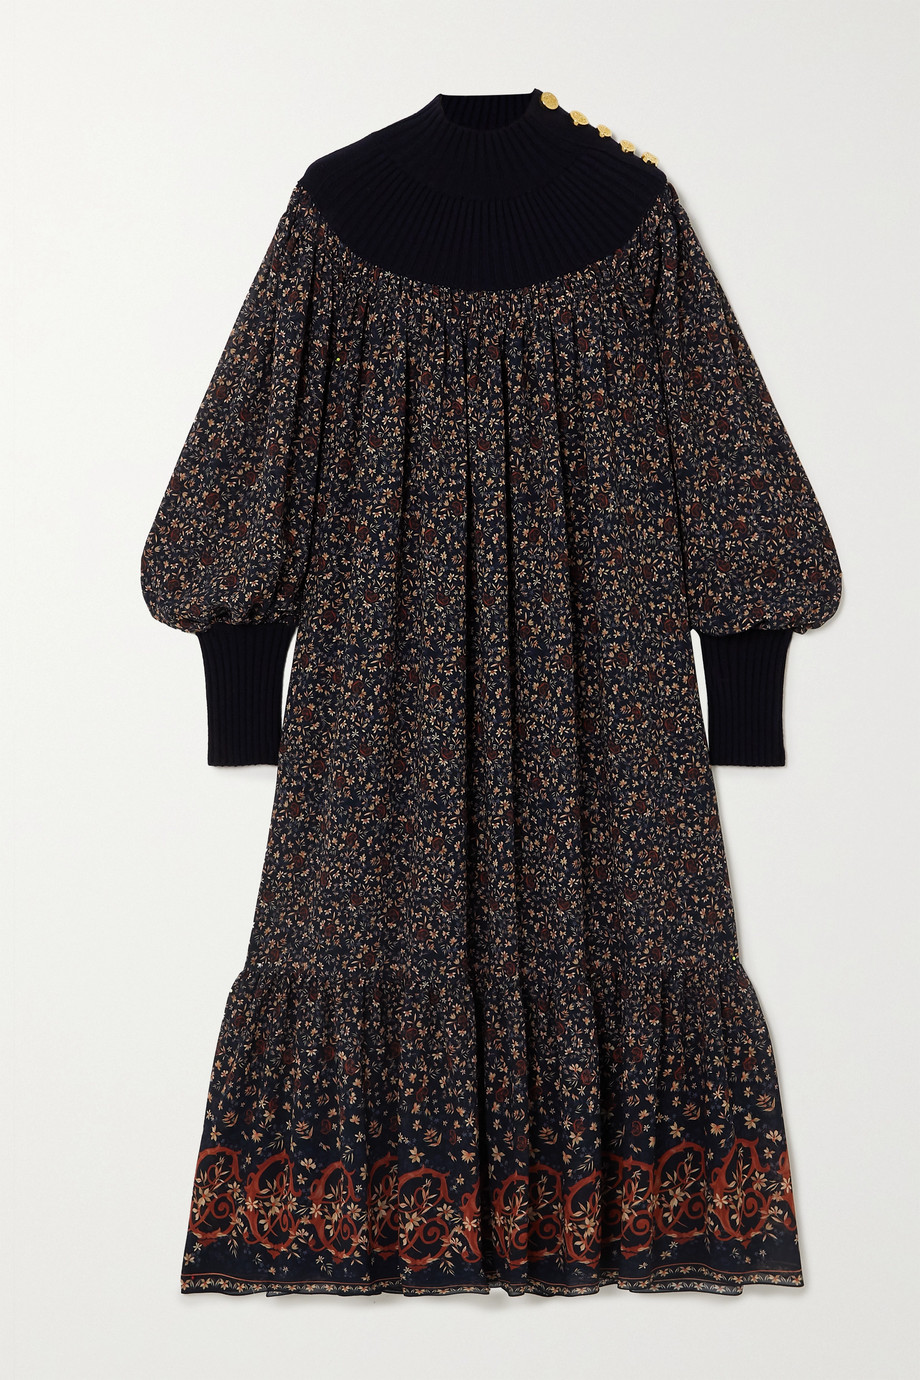 Chloé Floral-print silk-georgette and wool-blend midi dress